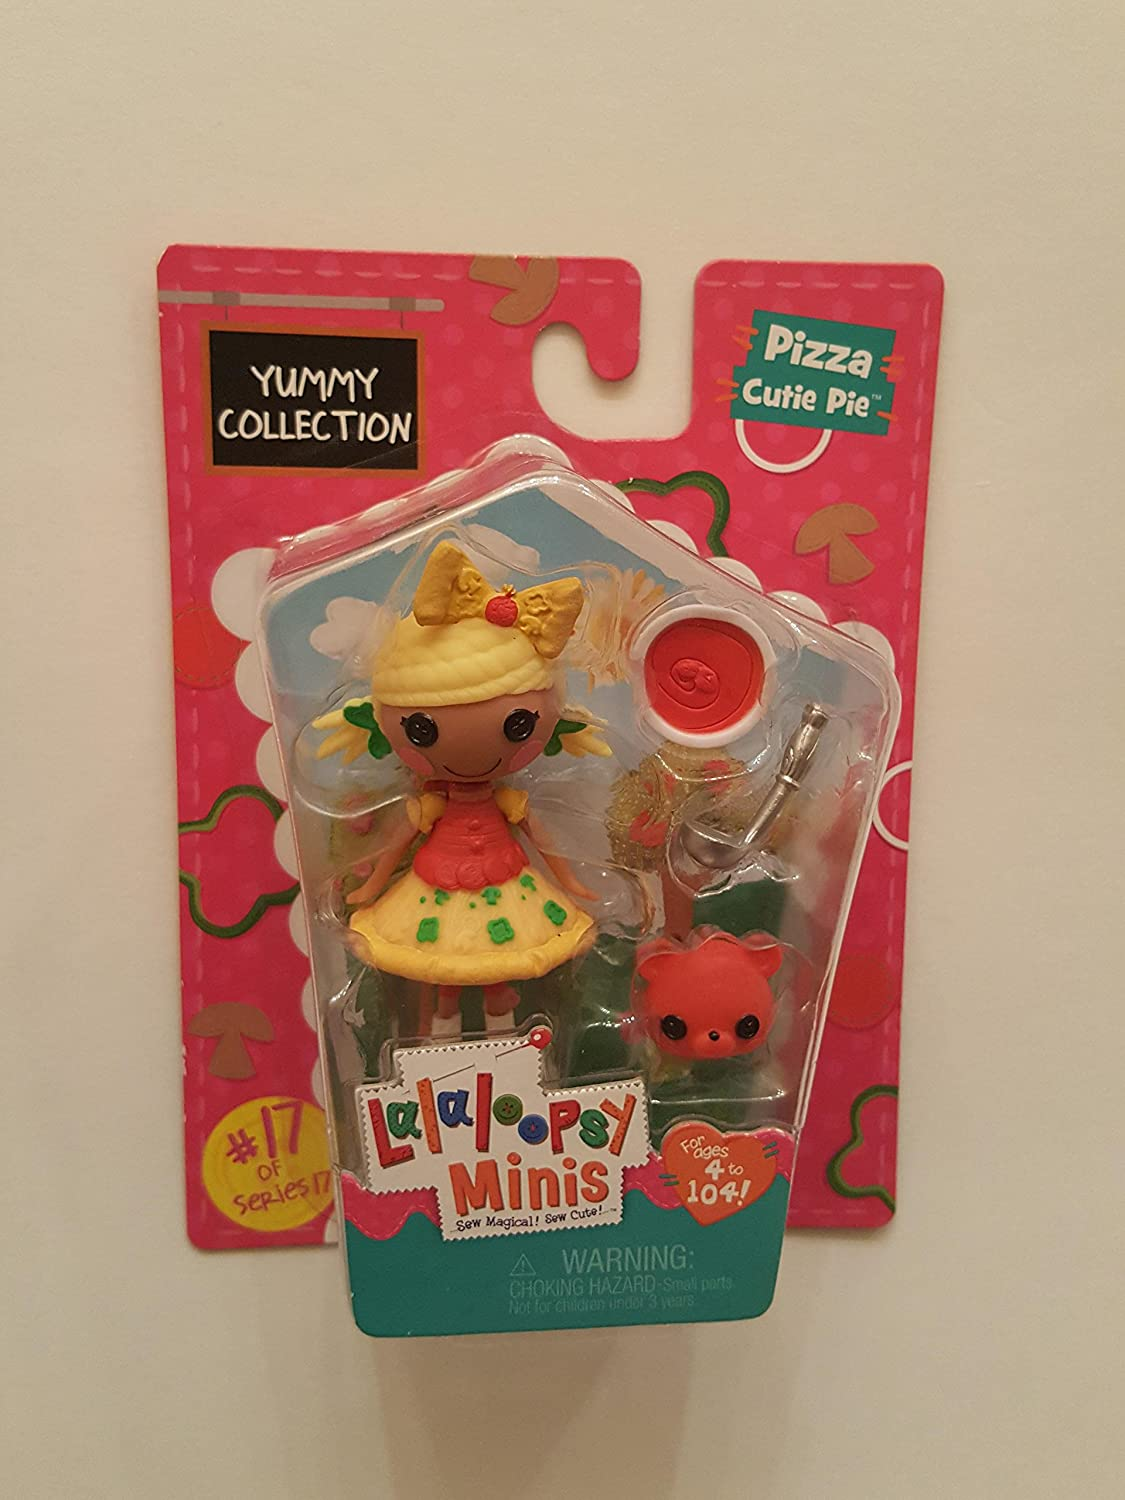 Lalaloopsy Minis Yummy Collection Pizza Cutie Pie